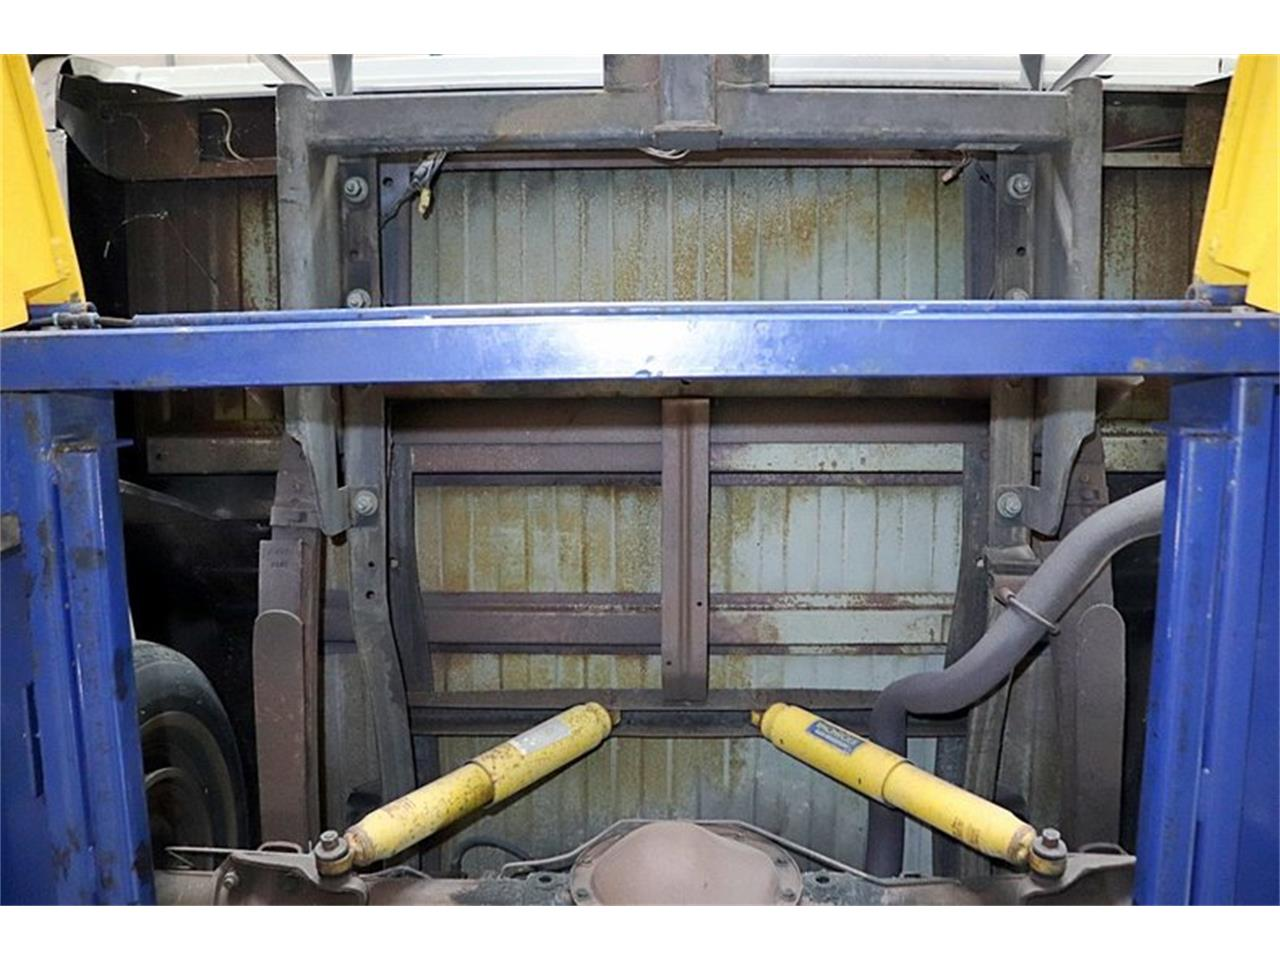 Large Picture of '74 Dodge D100 located in Michigan - $13,900.00 - Q8LY